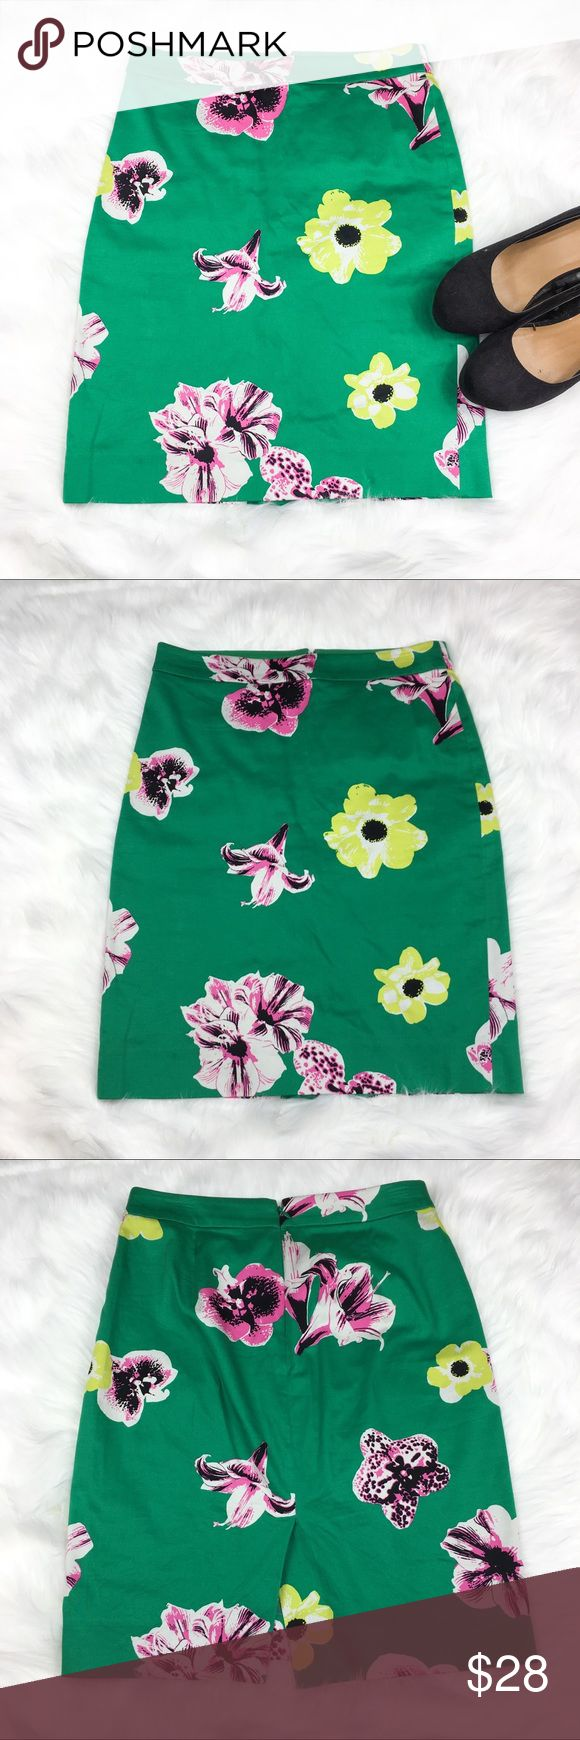 """J.Crew Factory The Pencil Skirt J.Crew Factory """"The Pencil Skirt"""" in green with flowers. Size 0. Approximate measurements flat laid 20' long and 17' hip. Waist measurements are pictured above. GUC with no major flaws. ❌No trades ❌ Modeling ❌No PayPal or off Posh transactions ❤️ I 💕Bundles ❤️Reasonable Offers PLEASE ❤️ J.Crew Factory Skirts Pencil"""